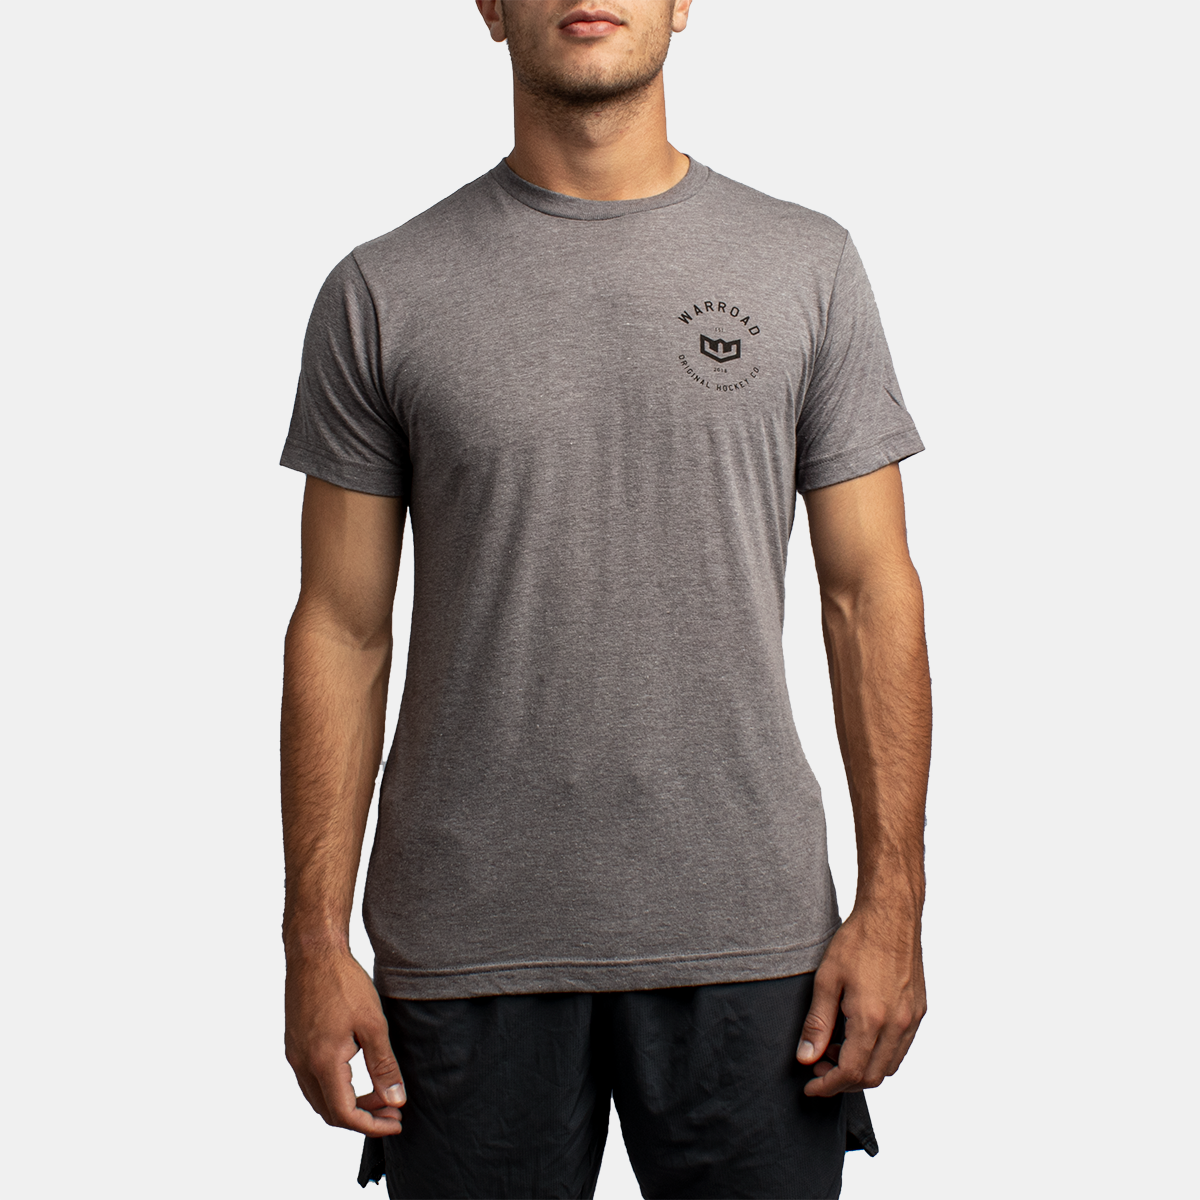 Original Hockey Co. Tee - Heather